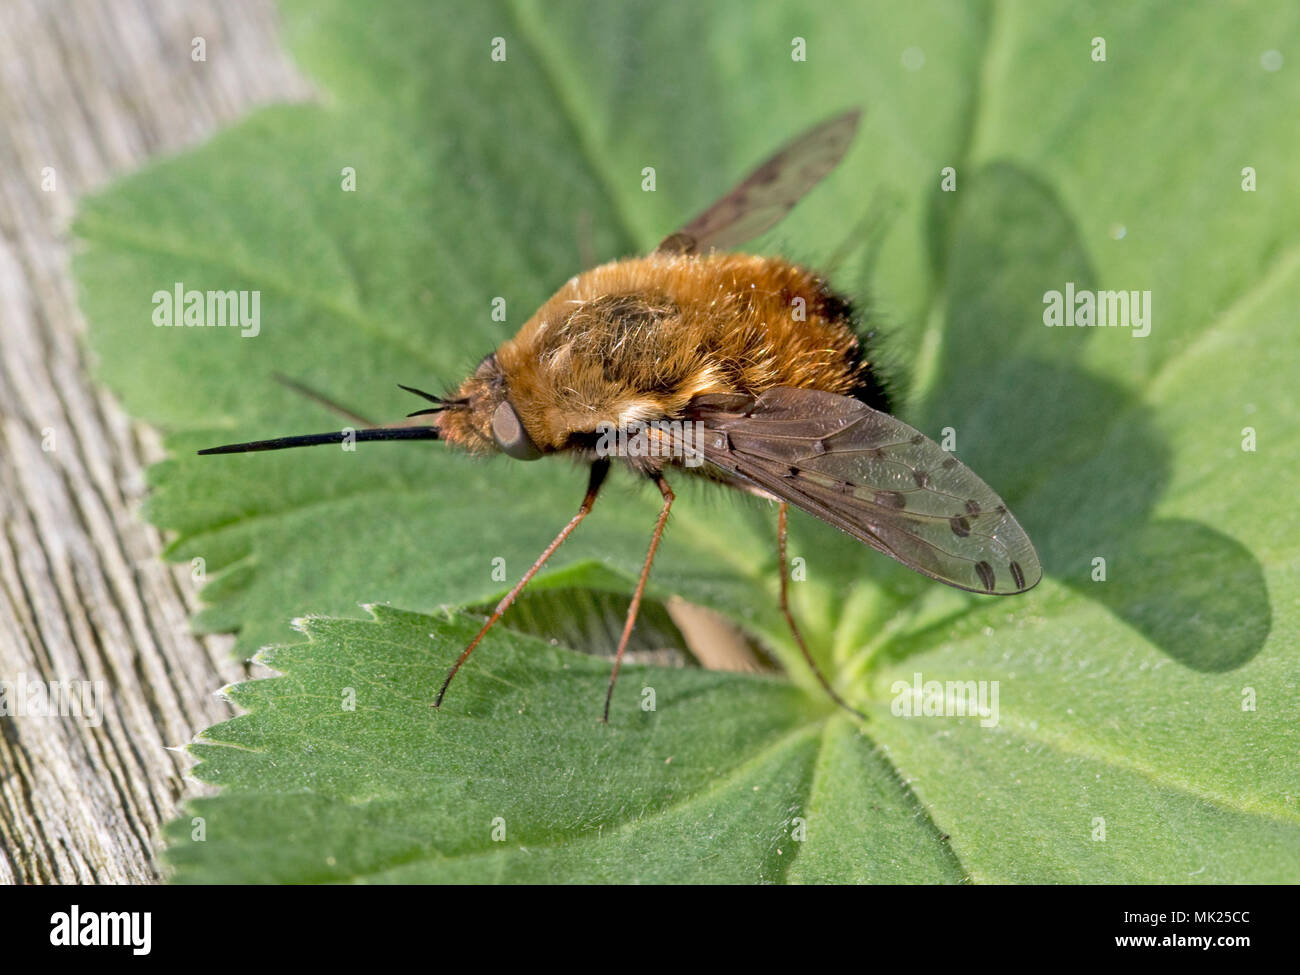 Dotted beefly with long proboscis resting on leaf Cotswolds UK - Stock Image